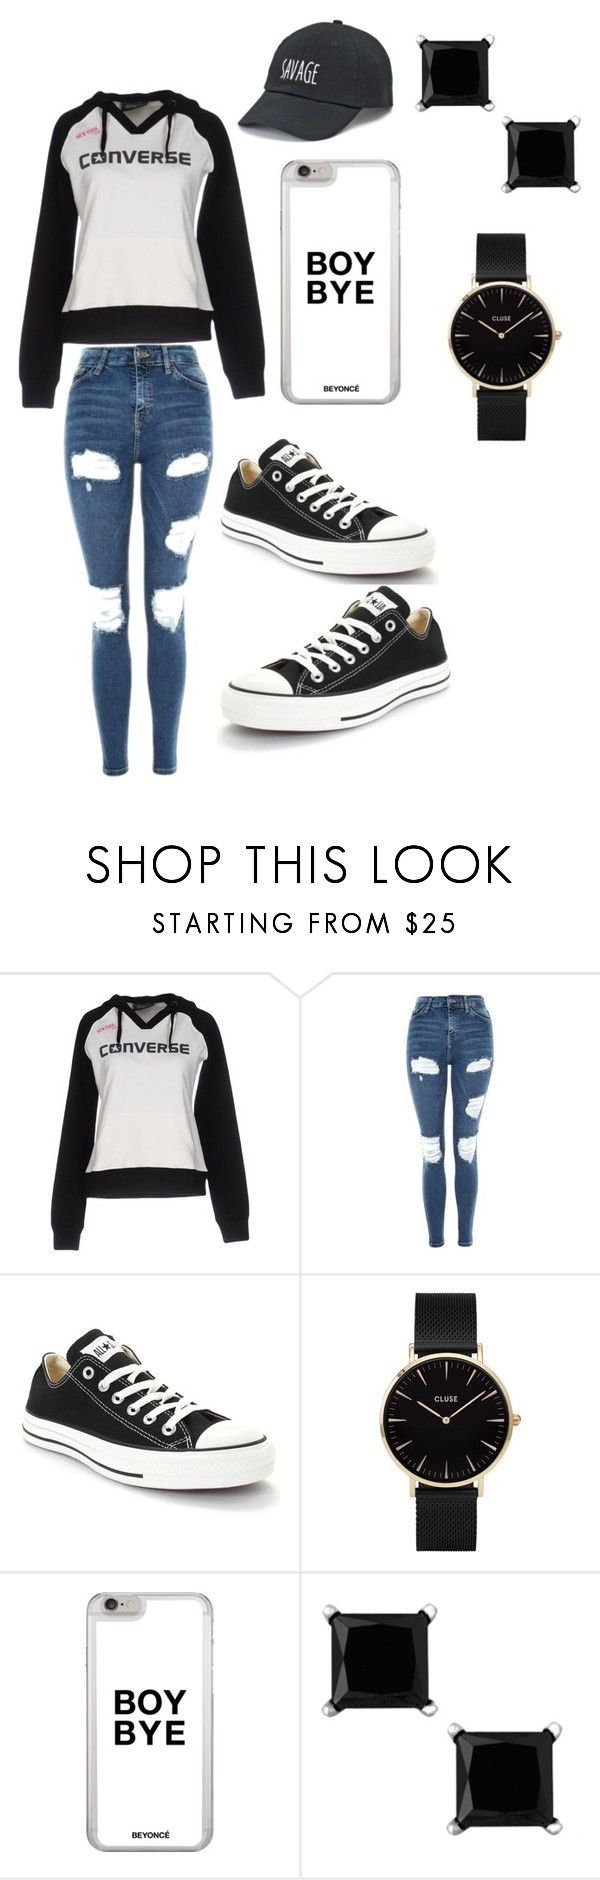 """Untitled #2"" by jj1650261 on Polyvore featuring Converse, Topshop, CLUSE and SO"